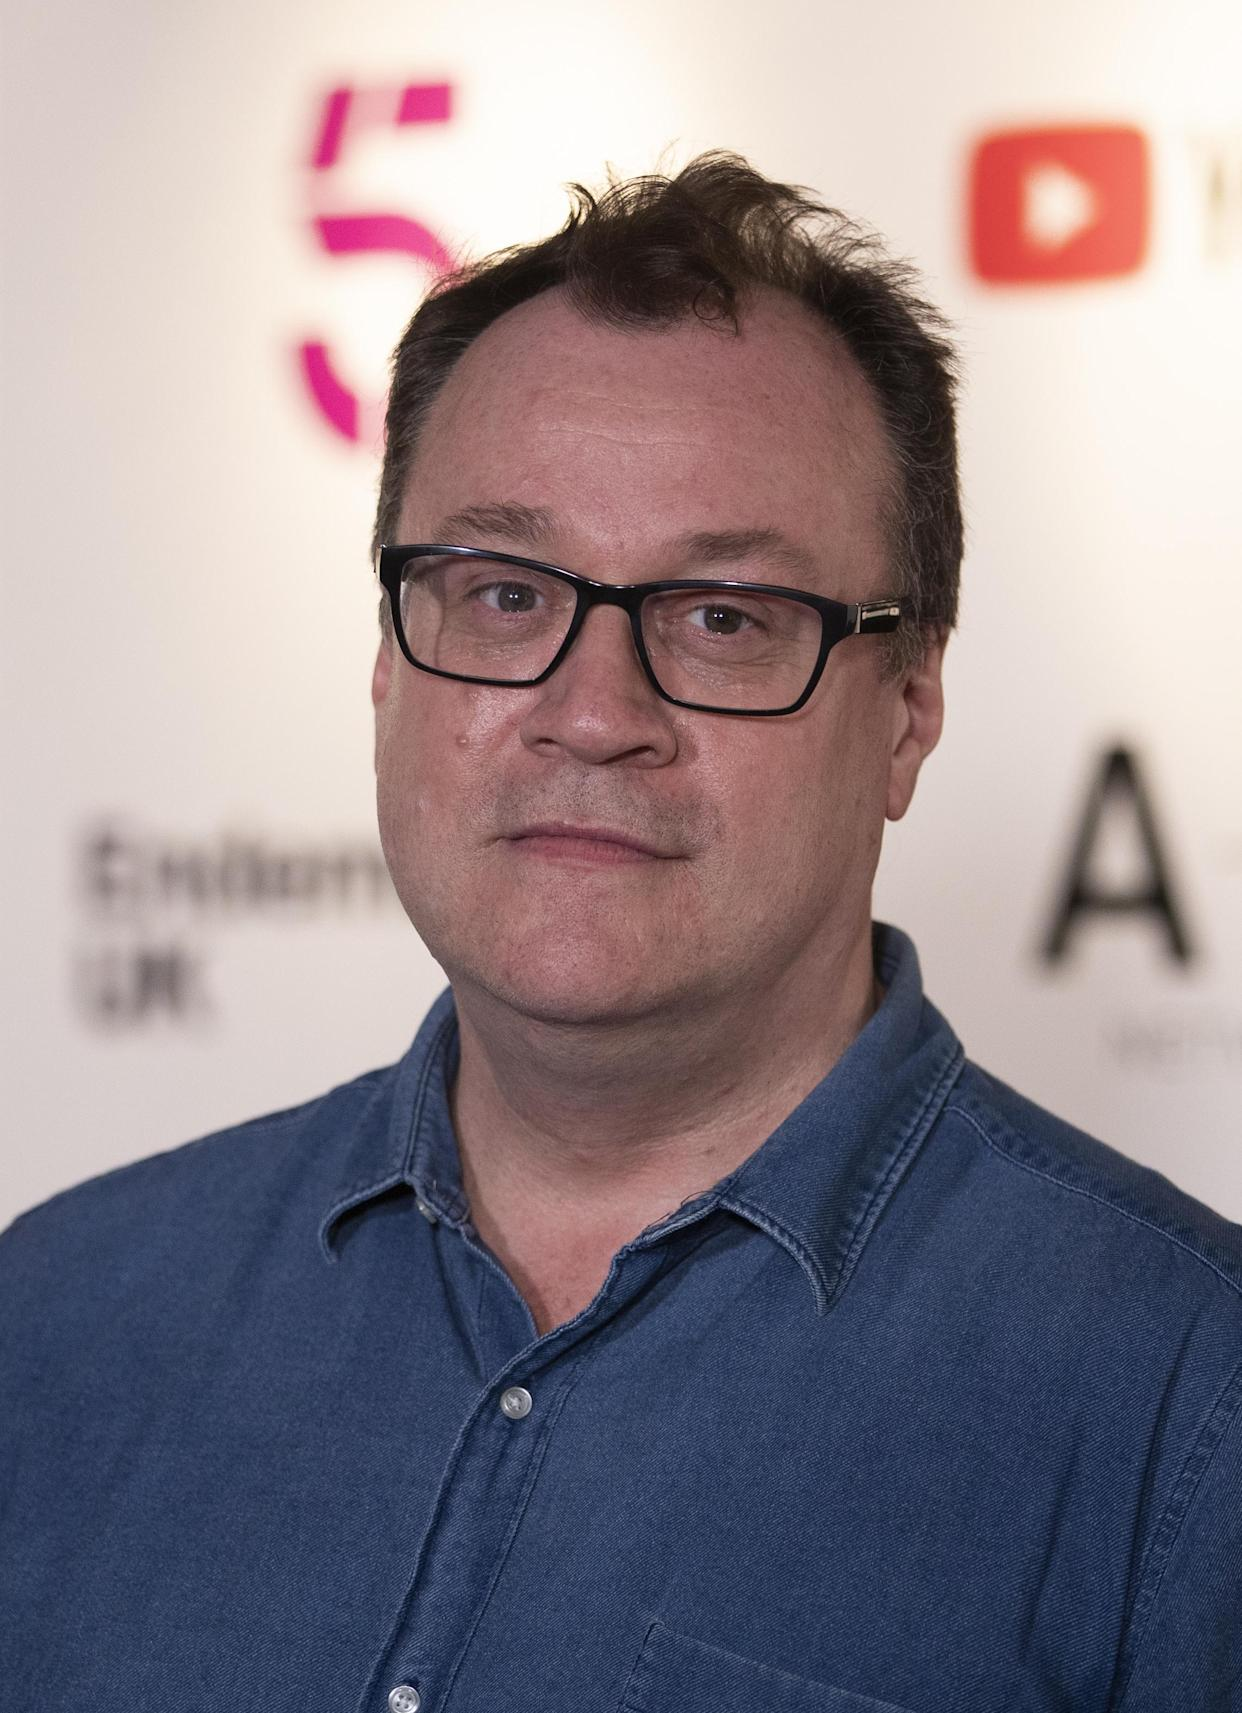 File photo dated 21/08/19 of Russell T Davies at the 2019 Edinburgh TV Festival. Mr Davies will return to Doctor Who to serve as showrunner after departing the show in 2009, the BBC has announced. The writer, who was behind the 2005 revival of the Time Lord, will replace Chris Chibnall when he exits the show next year. Davies will make his return to celebrate the 60th anniversary of Doctor Who in 2023.